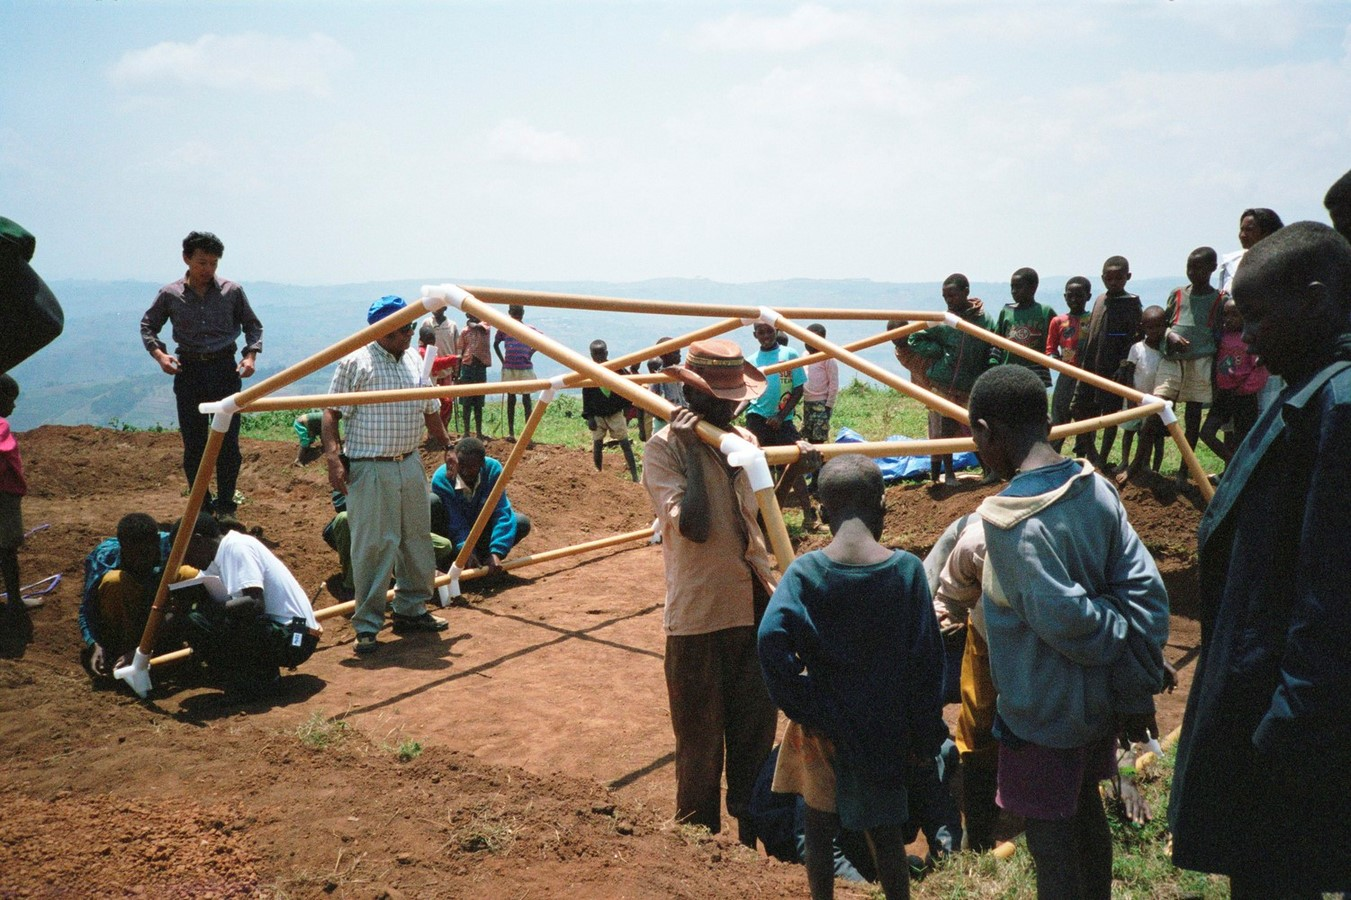 10 Reasons to architects should practice for humanitarian architecture - Sheet14